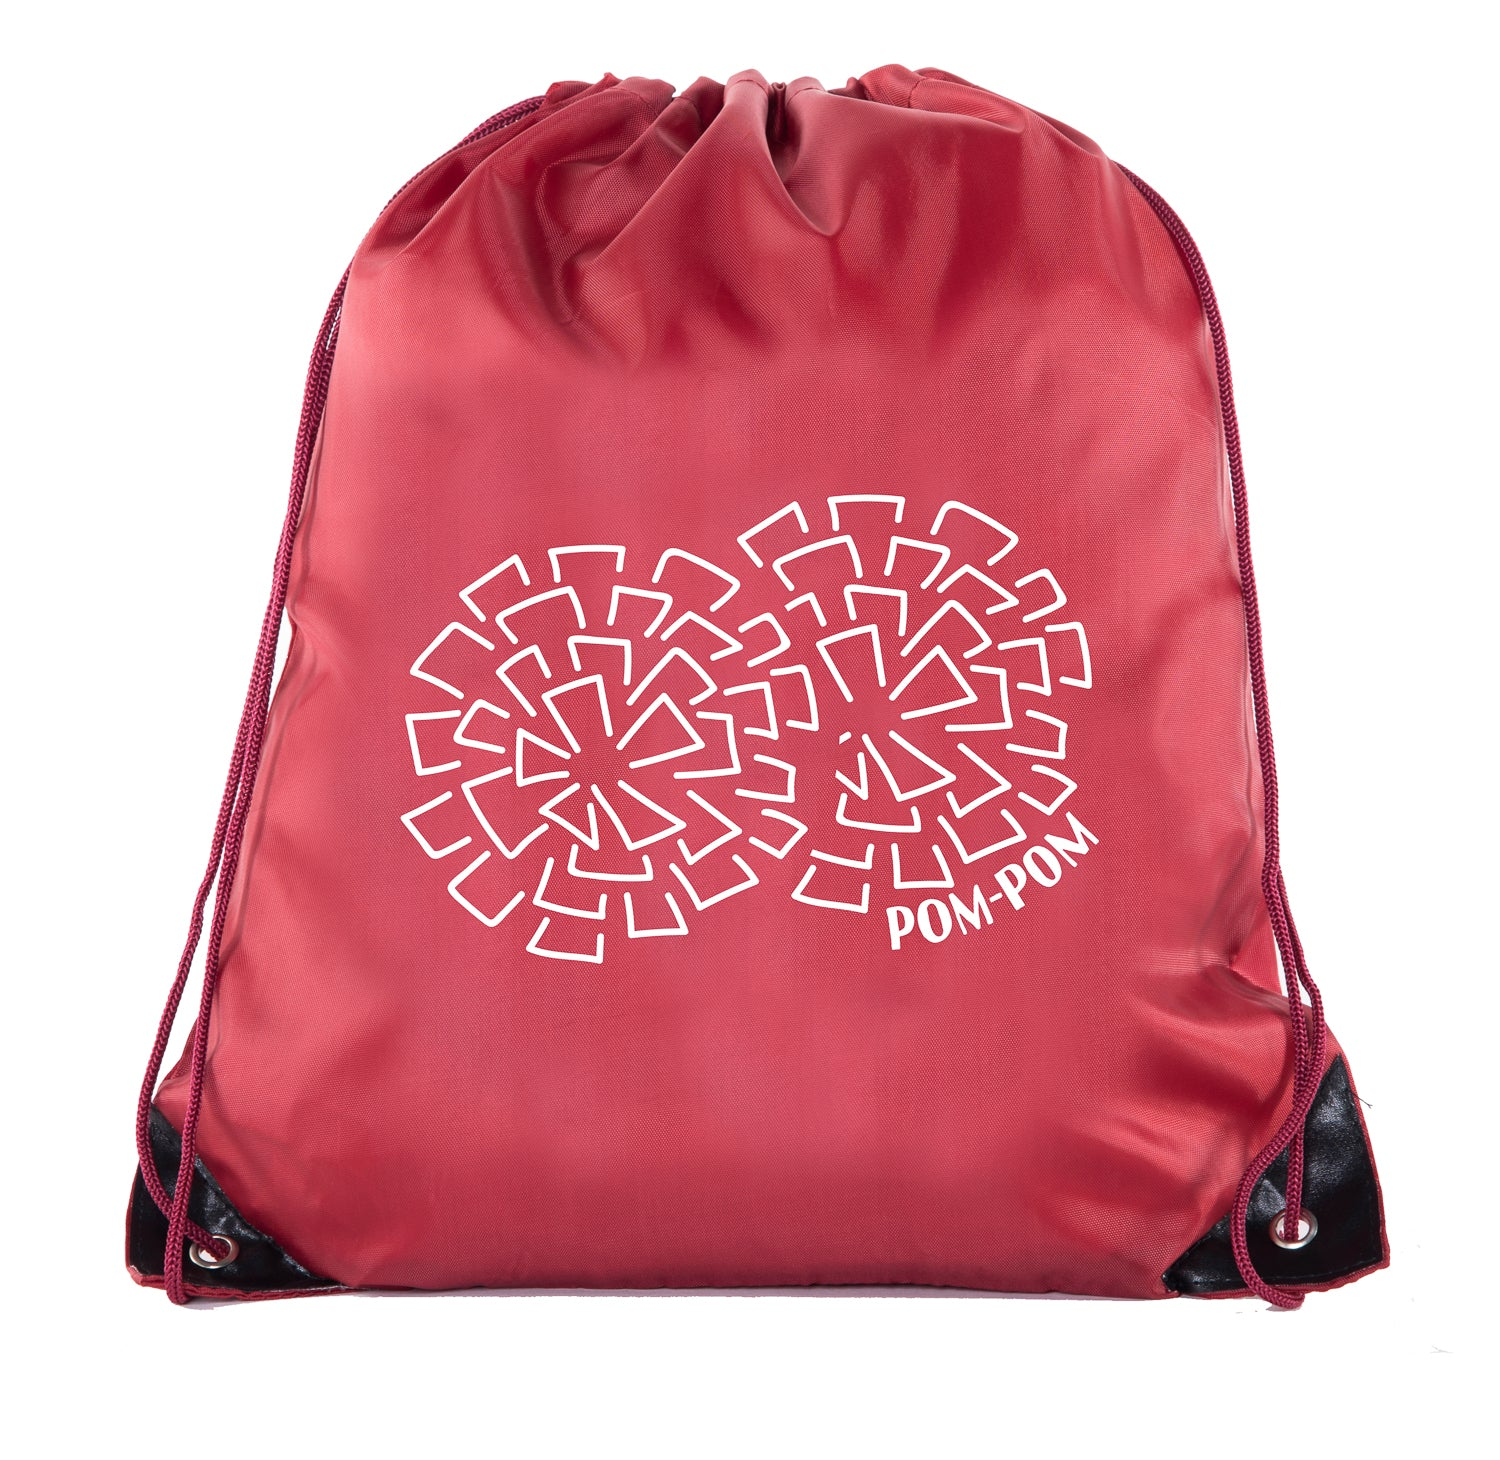 Accessory - Cheer Bags, Pom Pom And Cheerleader Drawstring Backpacks, Cheerleader Team Bags - PomPom